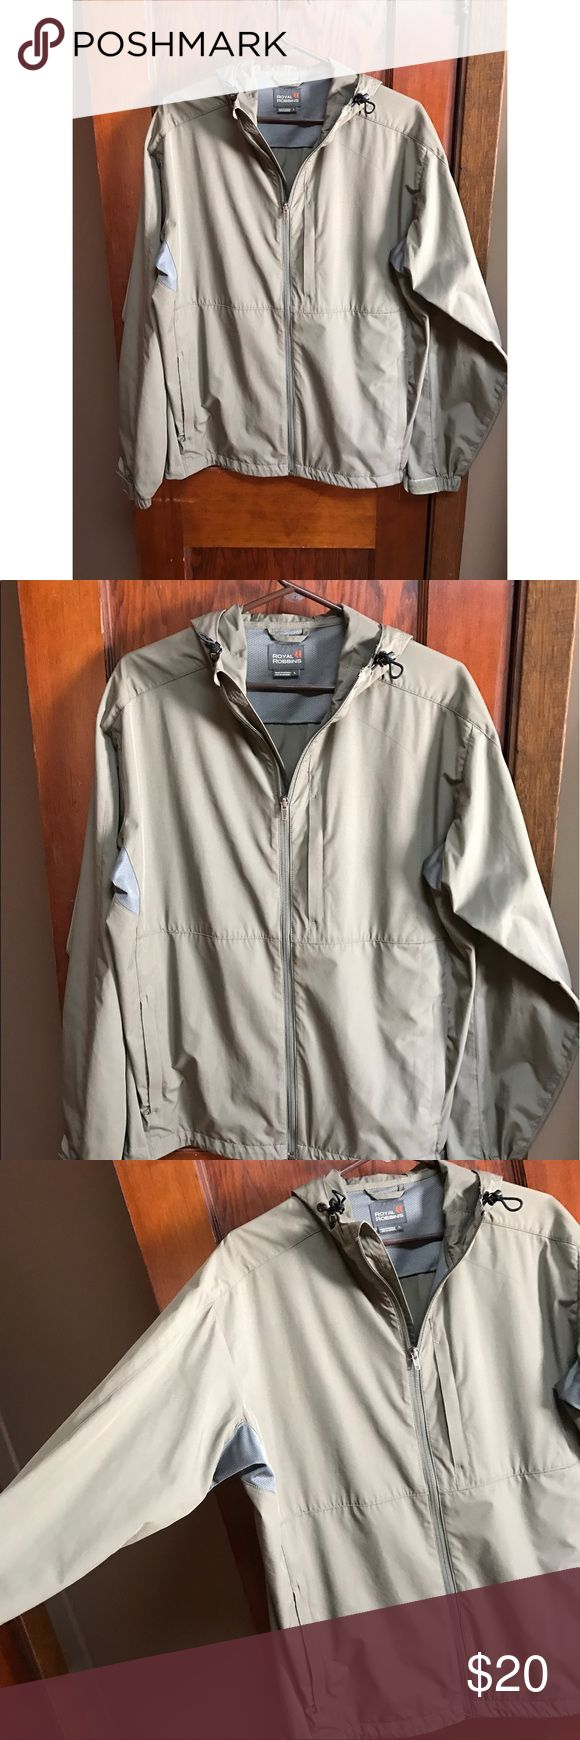 •Women's Windbreaker//Spring jacket• Size large, never worn. Perfect for spring! 💙 Royal Robbins Jackets & Coats